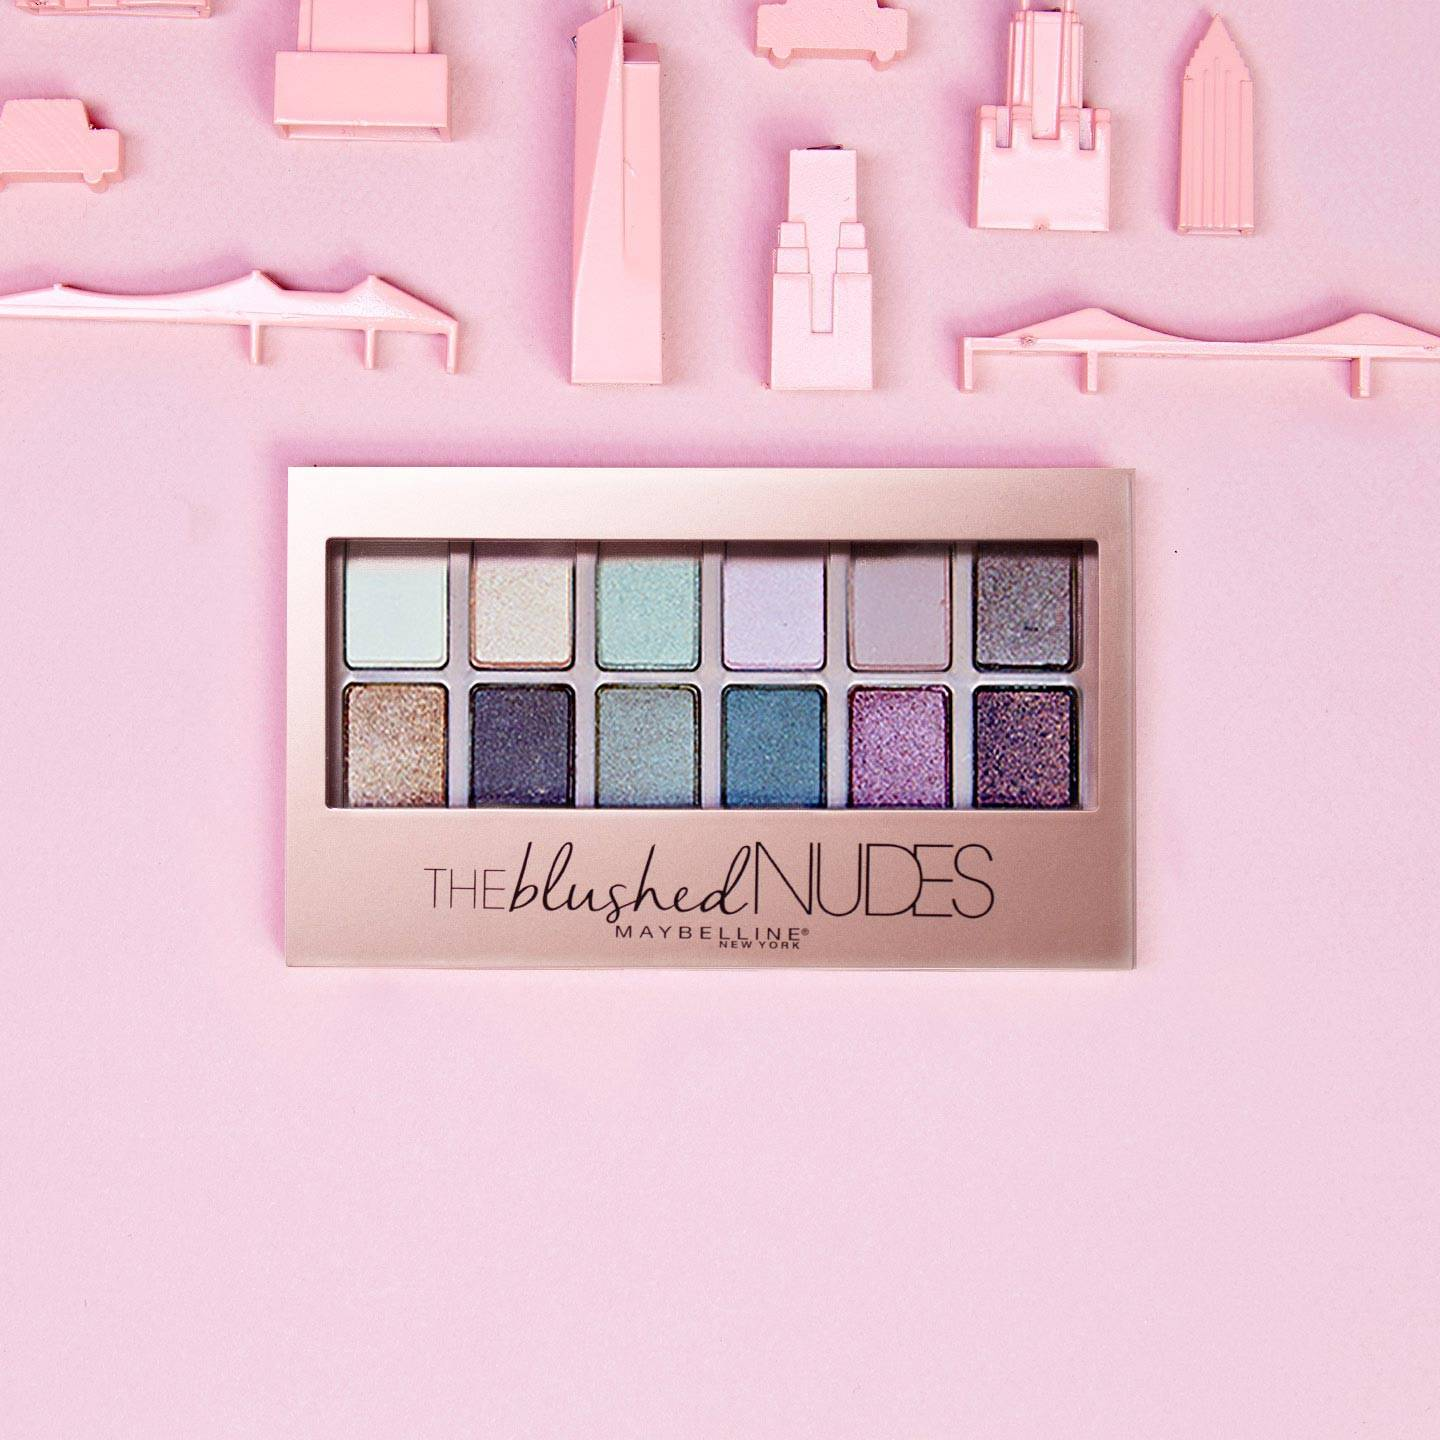 Maybelline-Blushed-Nudes-Eyeshadow-Palette-Makeup-1x1